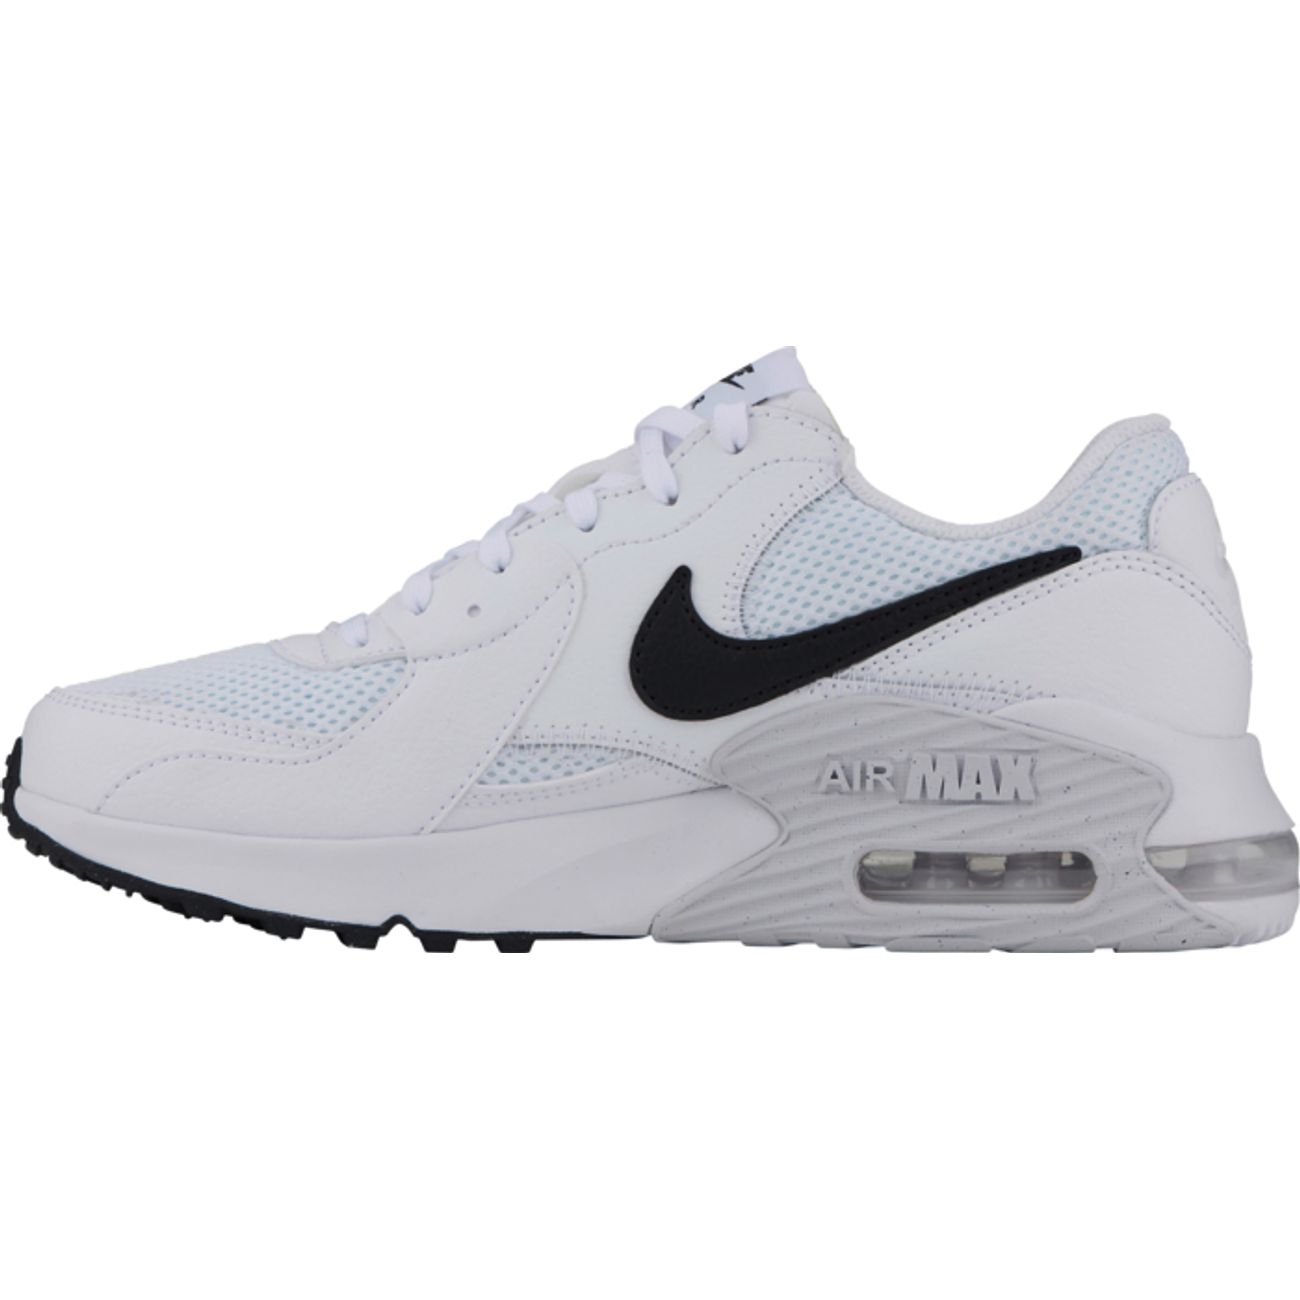 CHAUSSURES BASSES Loisirs femme NIKE AIR MAX EXCEE